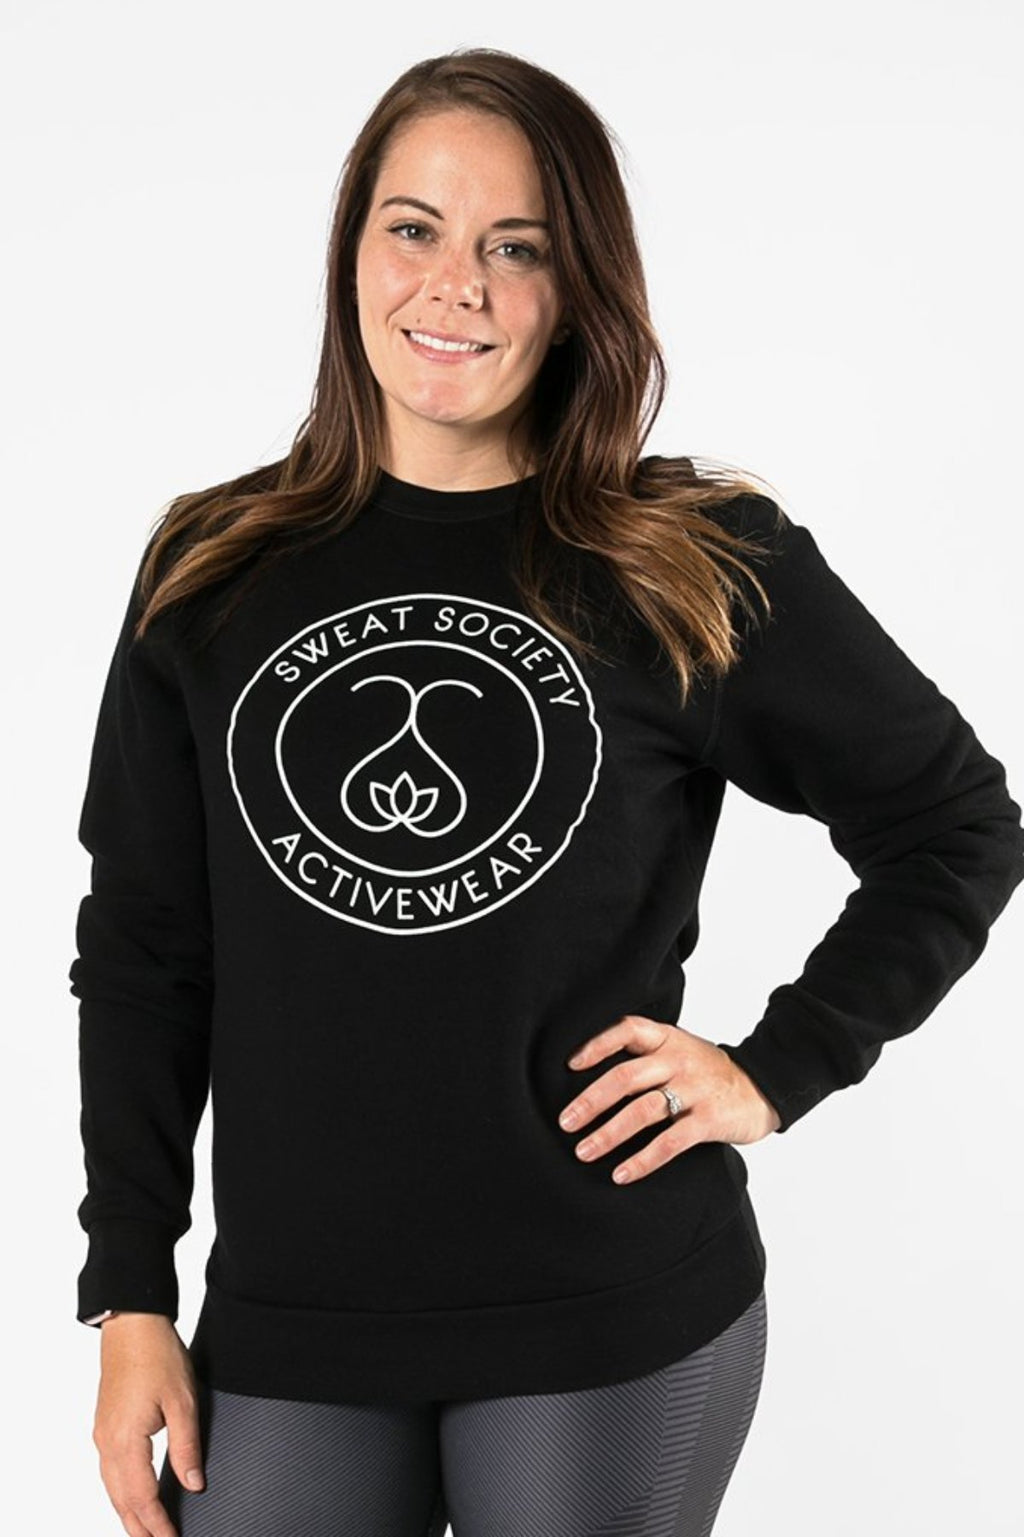 Sweat Society Krystal Bamboo Crewneck Ethical Activewear